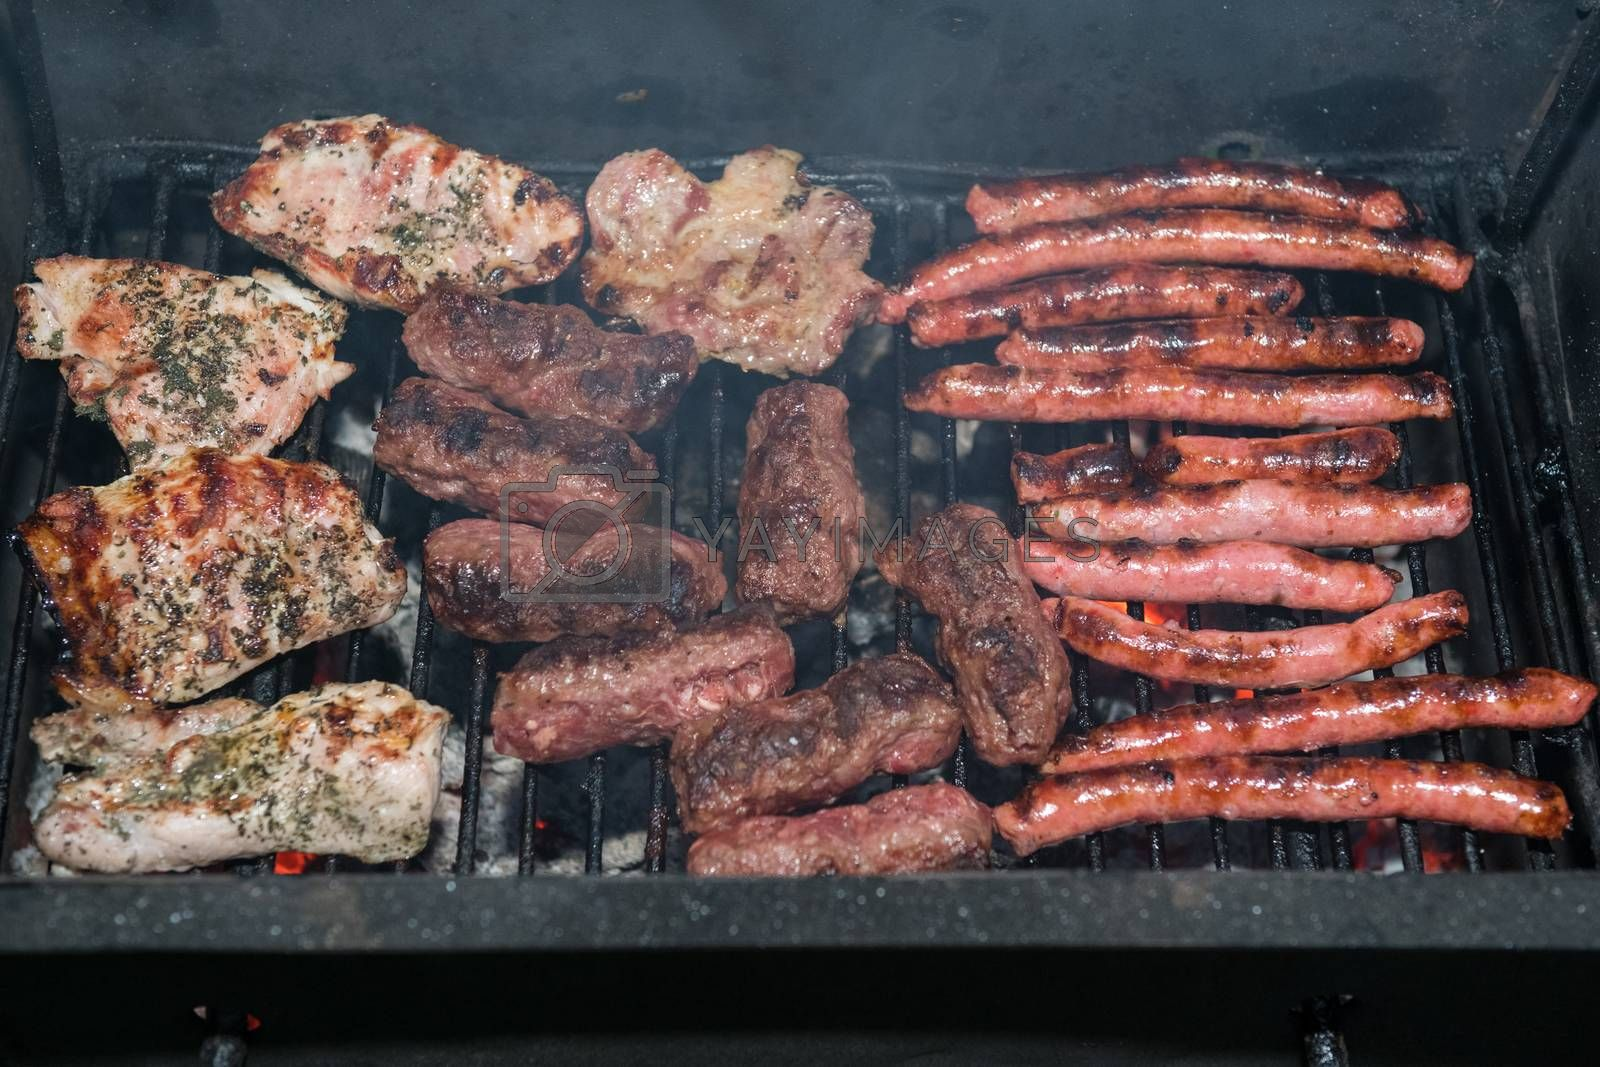 Grilled meats outdoors by Dan Totilca